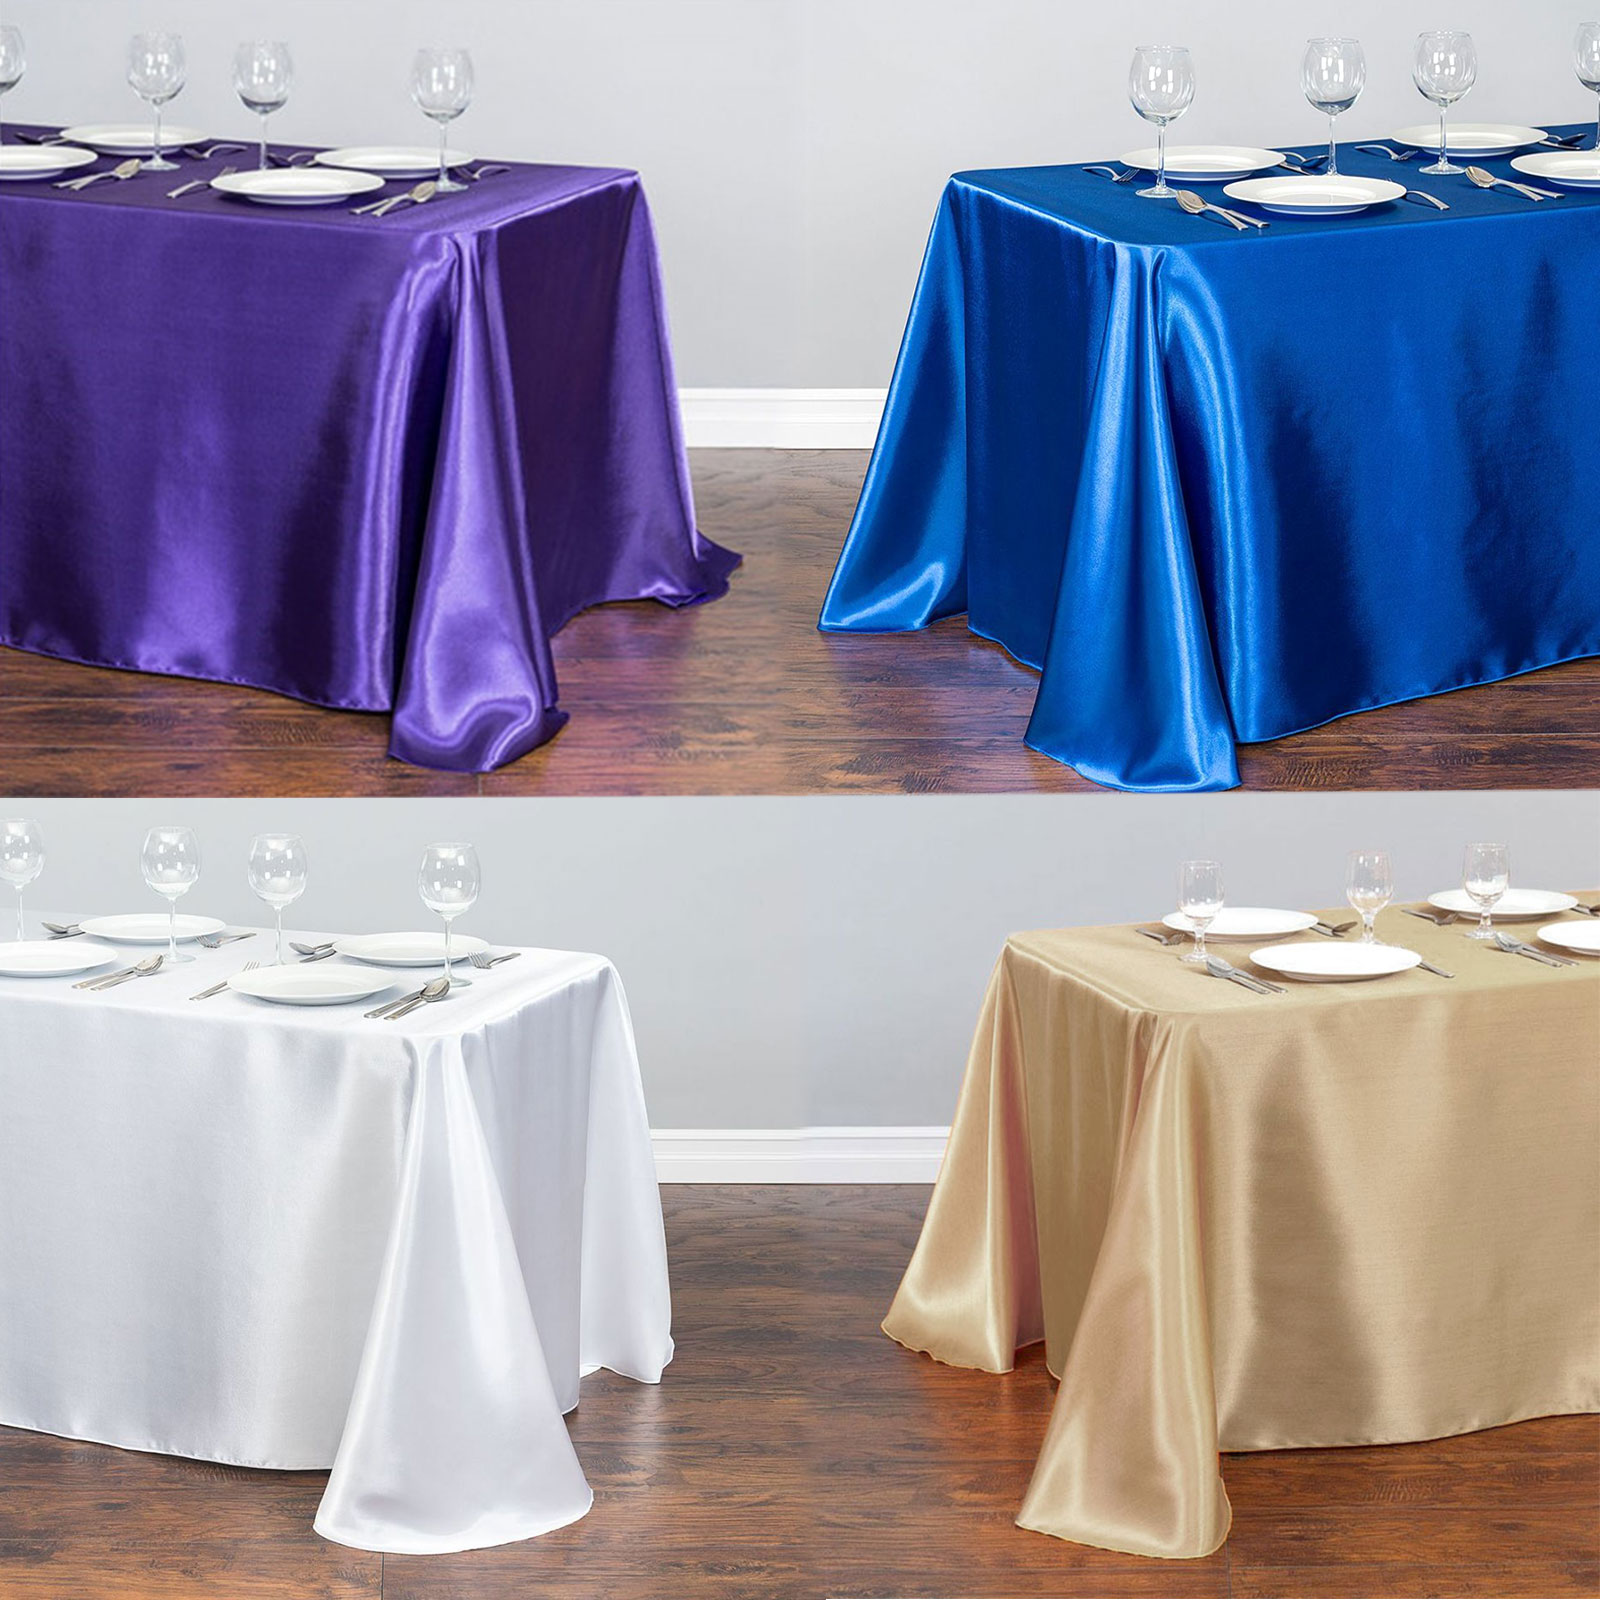 21 Solid Color Rectangular Satin Tablecloth Table Cover Dining For Wedding Party Banquet Decoration Christmas Table Clothes